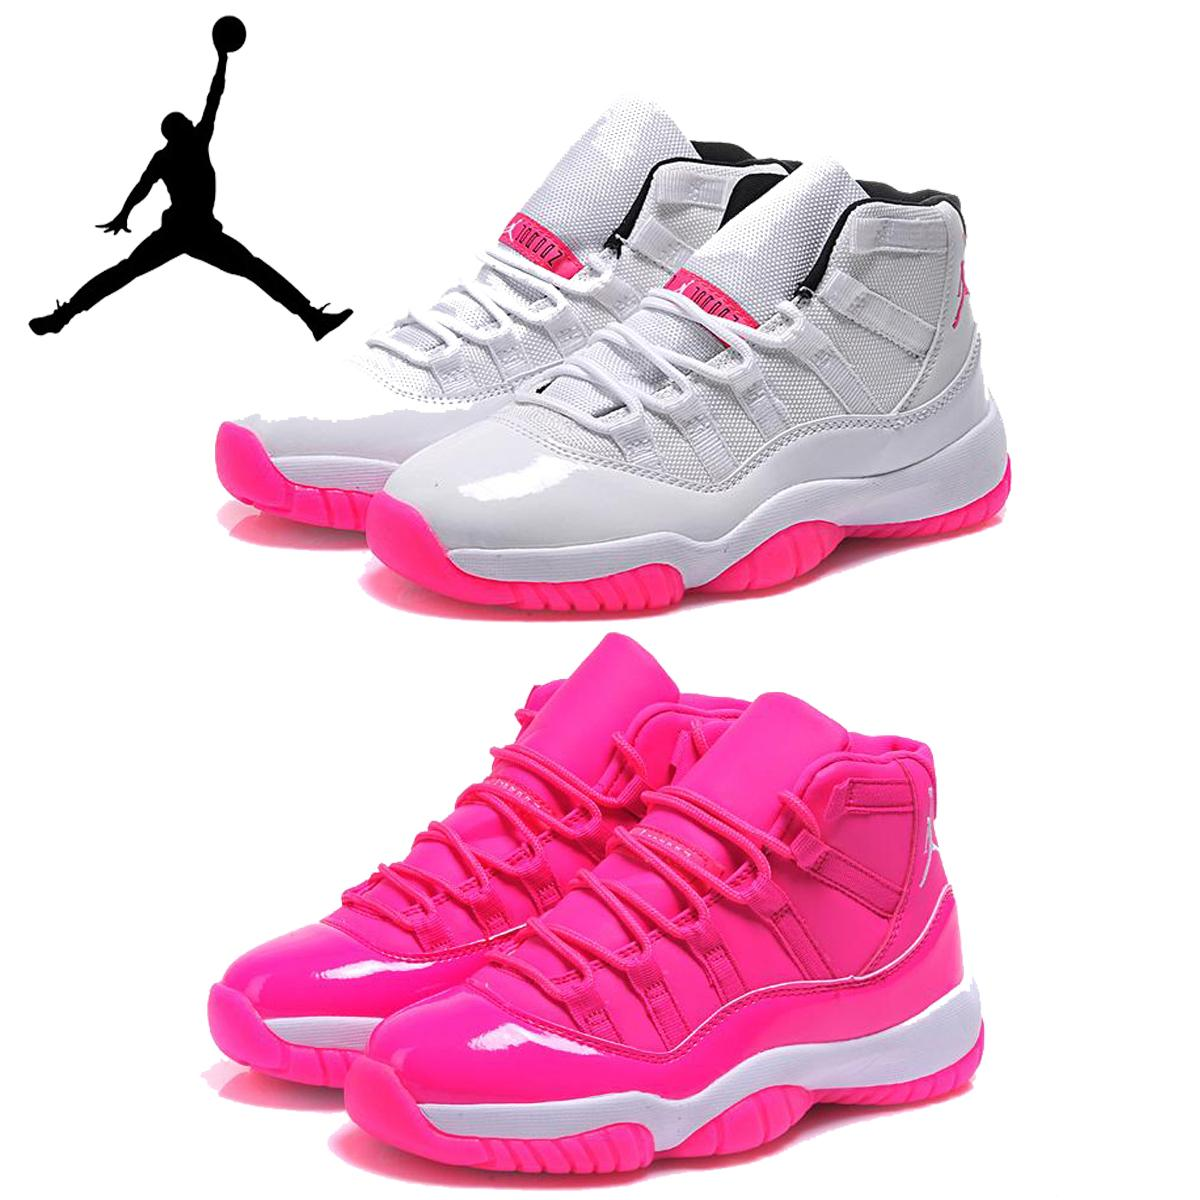 nike jordan basketball shoes for girls